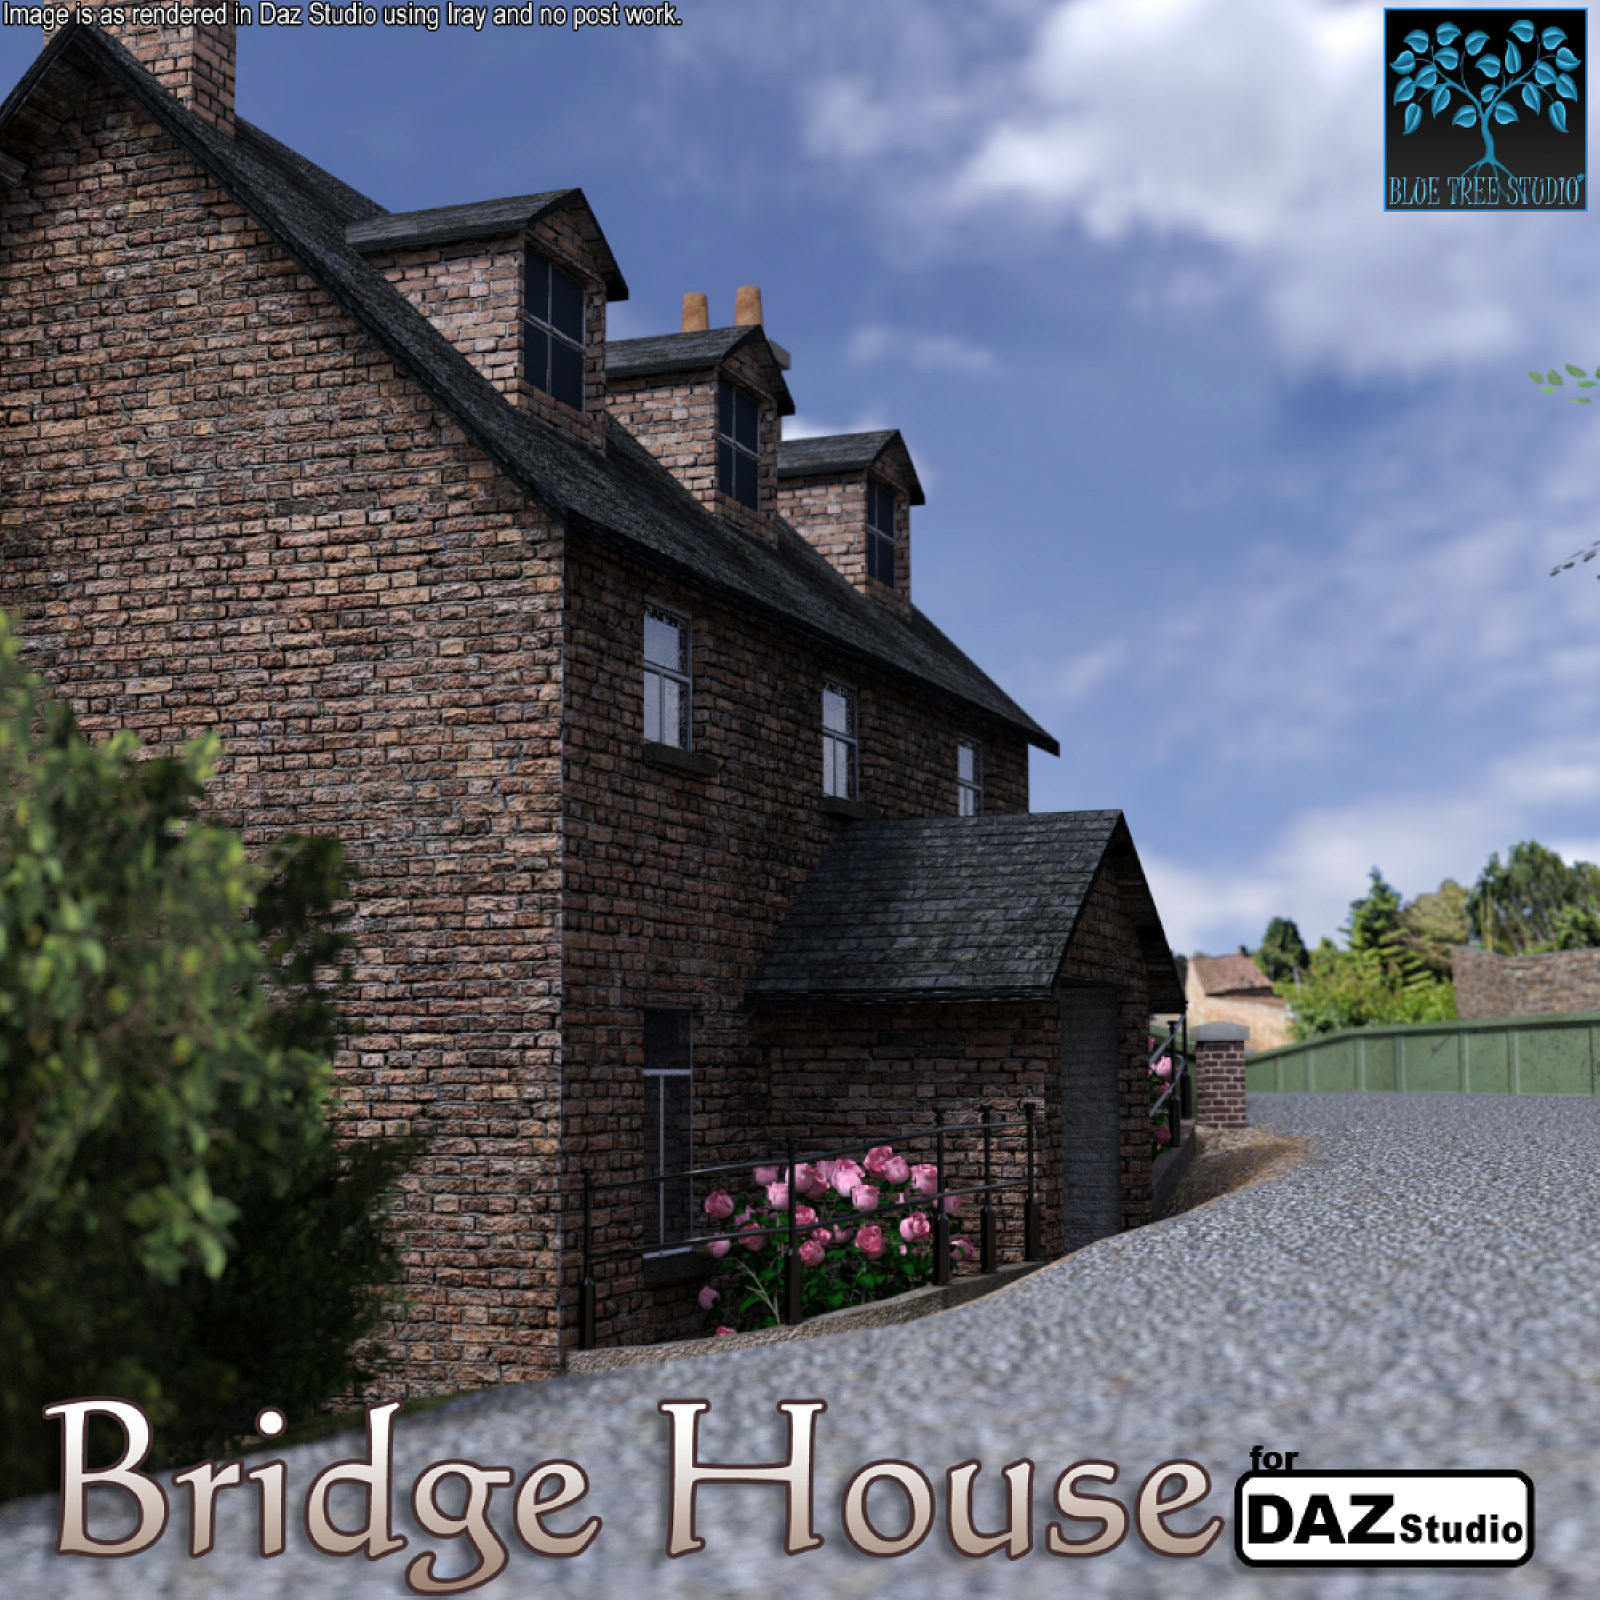 Bridge House for Daz Studio by BlueTreeStudio